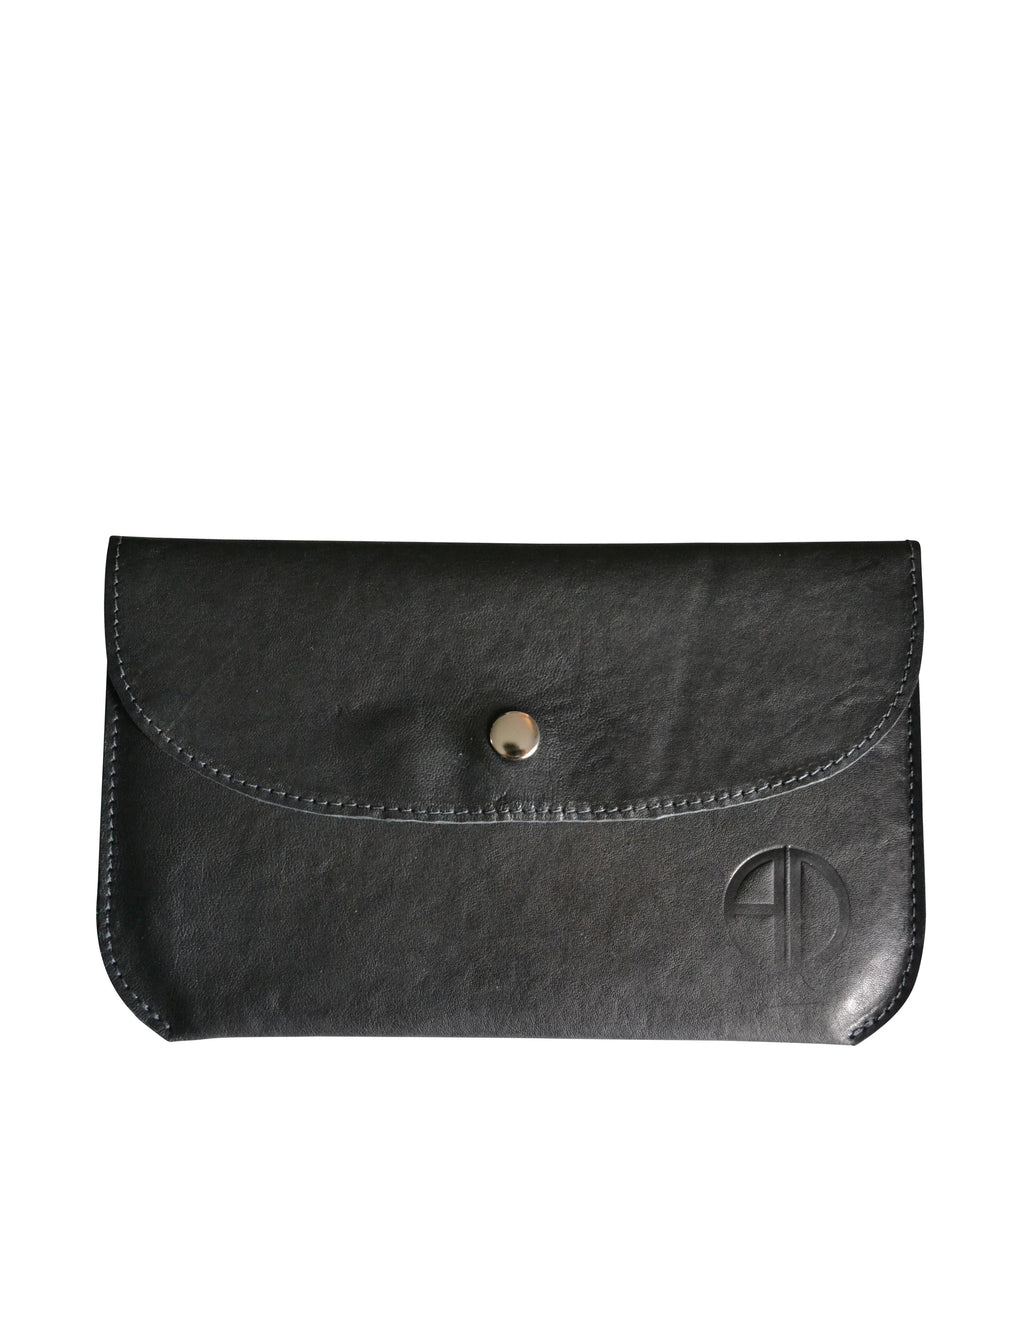 The Pouch Italian Black Leather | ALICIA DAKTERIS